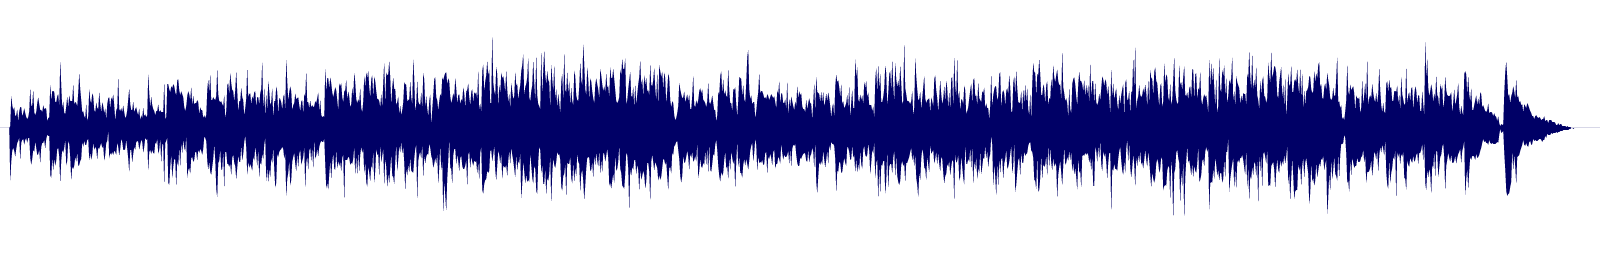 waveform of track #89578